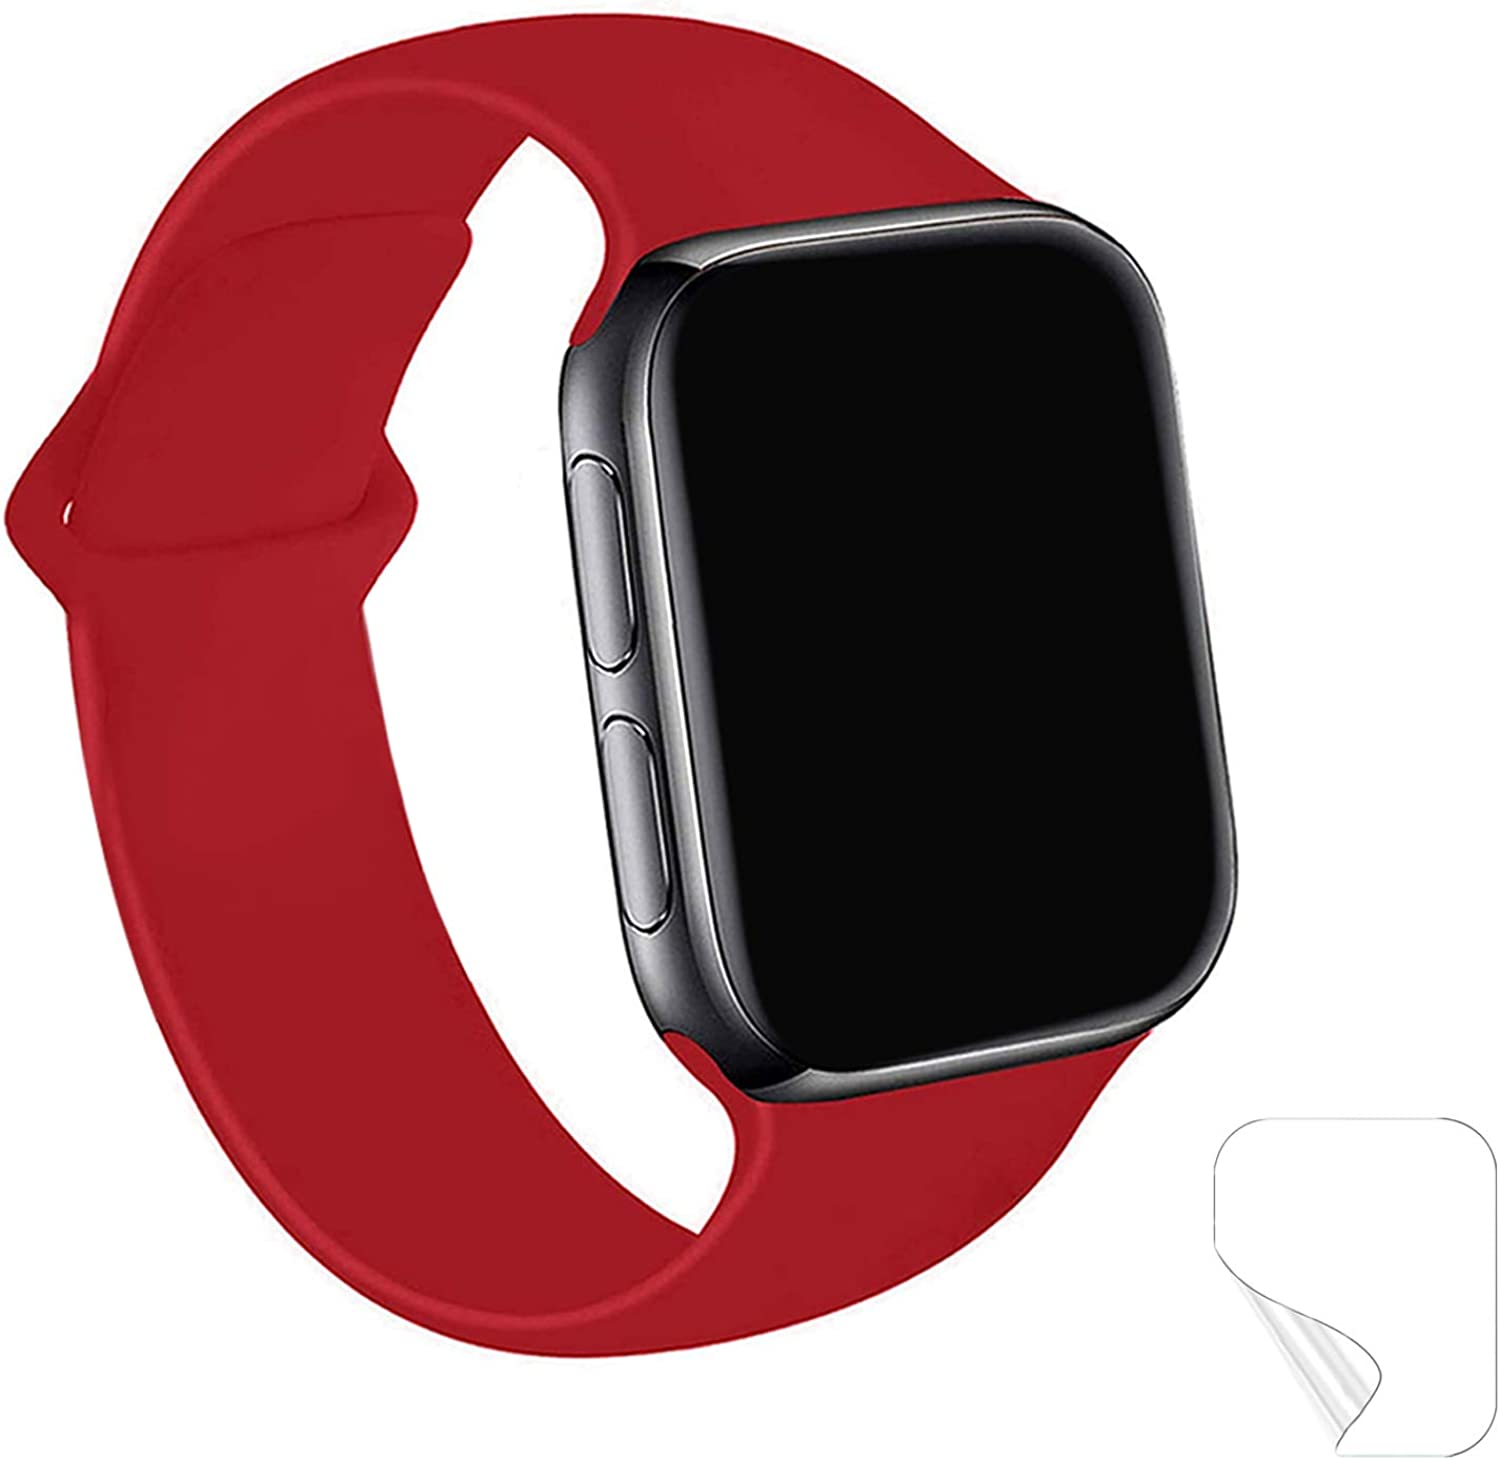 Maoyea Bands Compatible with Apple Watch Band 38mm 40mm 42mm 44mm, Soft Silicone Band Replacement Wrist Strap with iWatch Series 6 5 4 3 SE, Sport Edition for Women Men